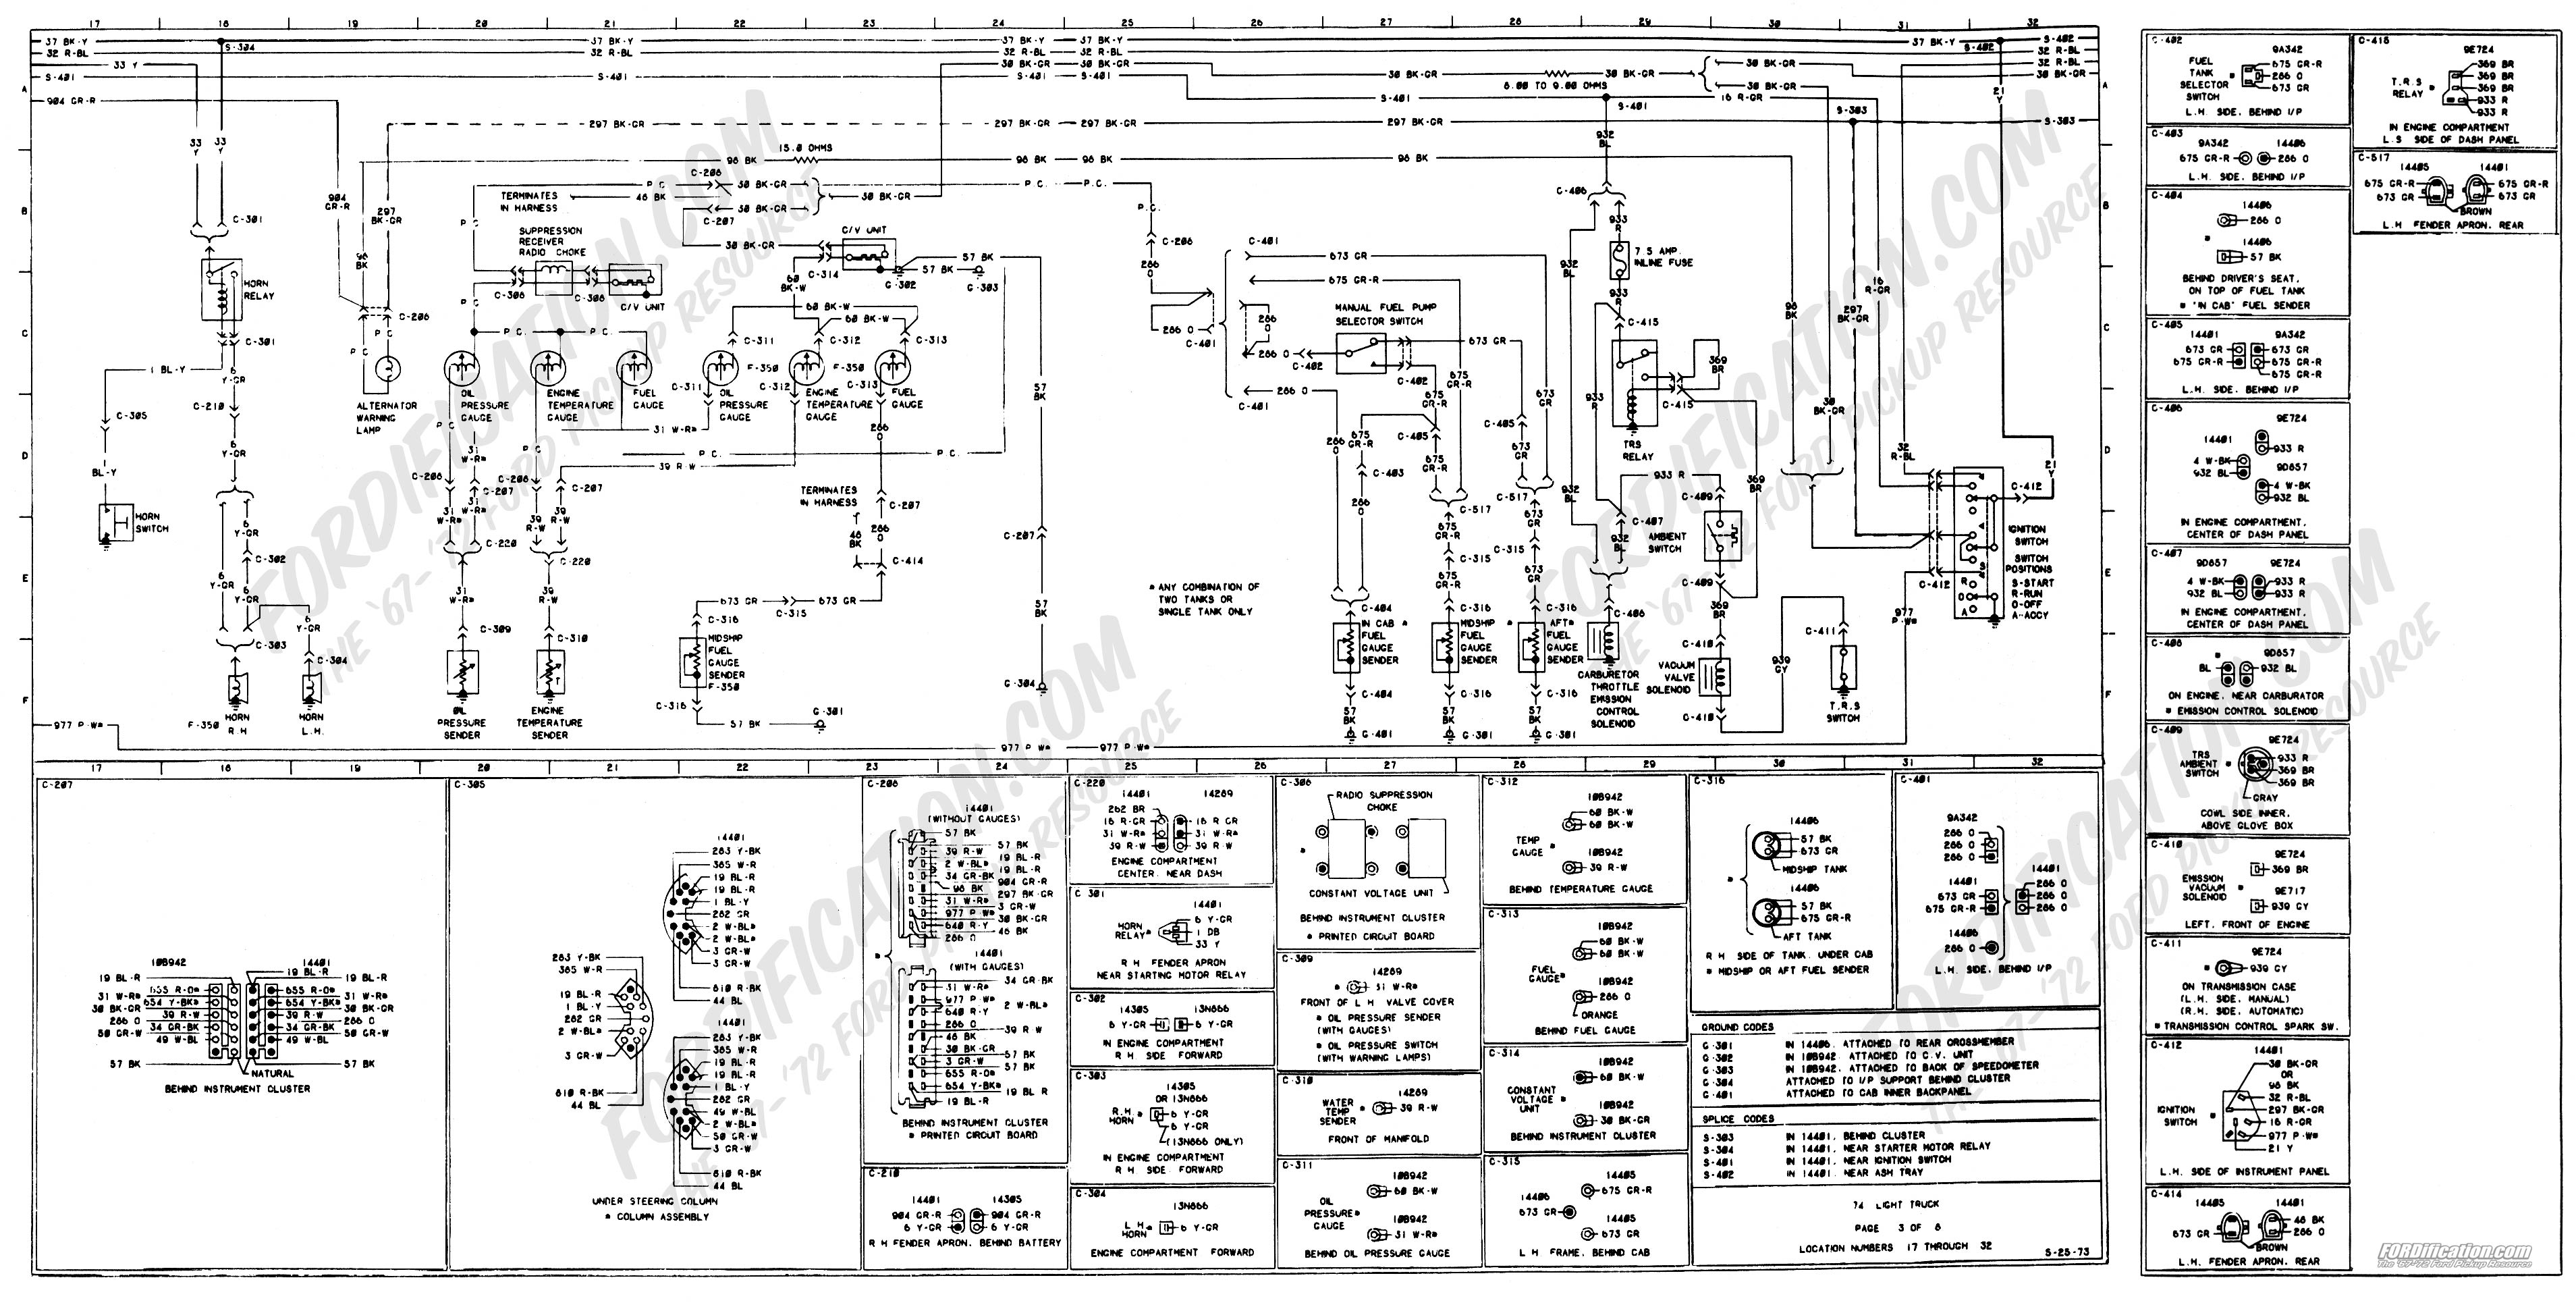 1966 Ford F 150 Wire Diagrams List Of Schematic Circuit Diagram 1974 Camaro Wiring 73 F100 Detailed Schematics Rh Jvpacks Com